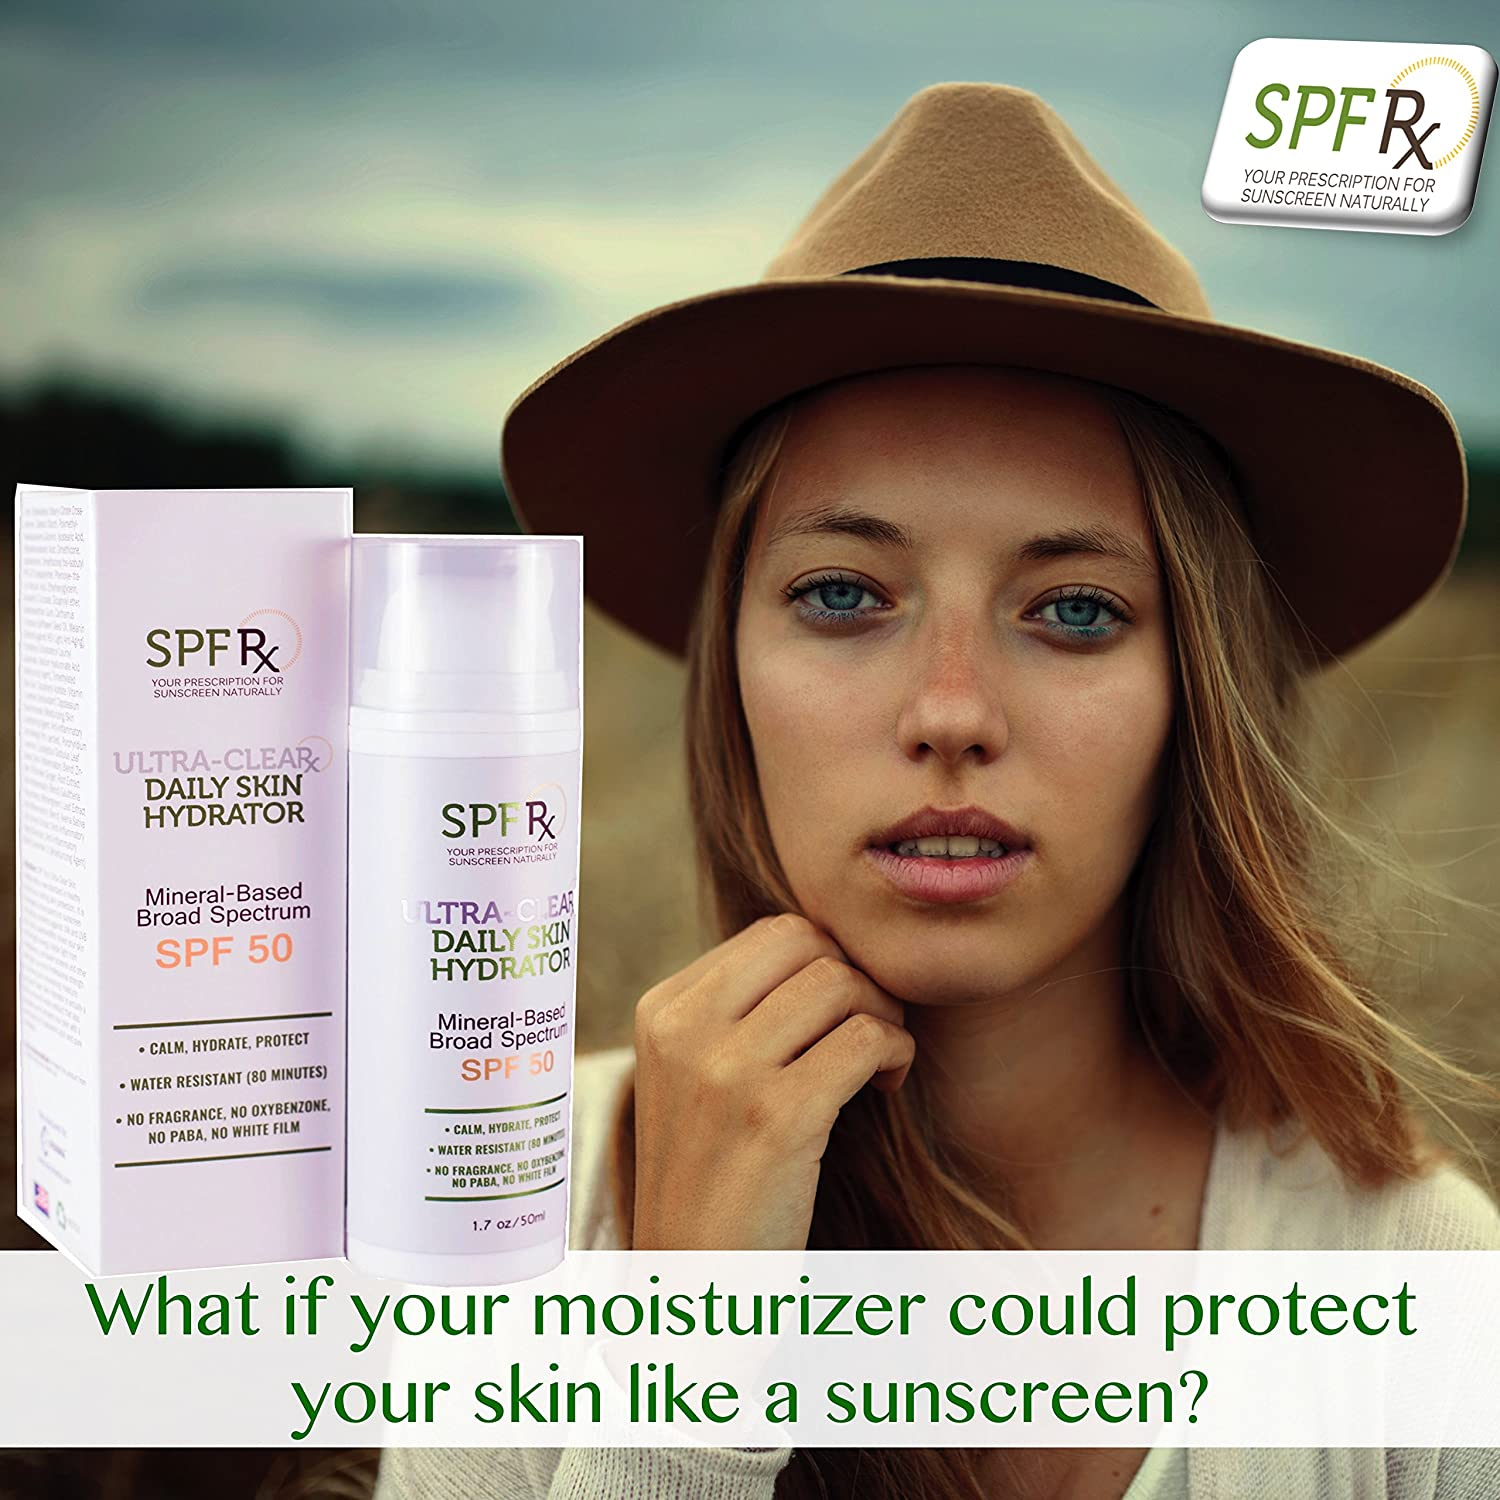 SPF Rx Ultra Clear UV Moisturizer SPF 50 Sunscreen Lotion with Zinc Oxide, Hyaluronic Acid First Daily Moisturizer To Protect Skin With Broad Spectrum, Multi-Functional Facial Product 1.7 oz, 2 pack